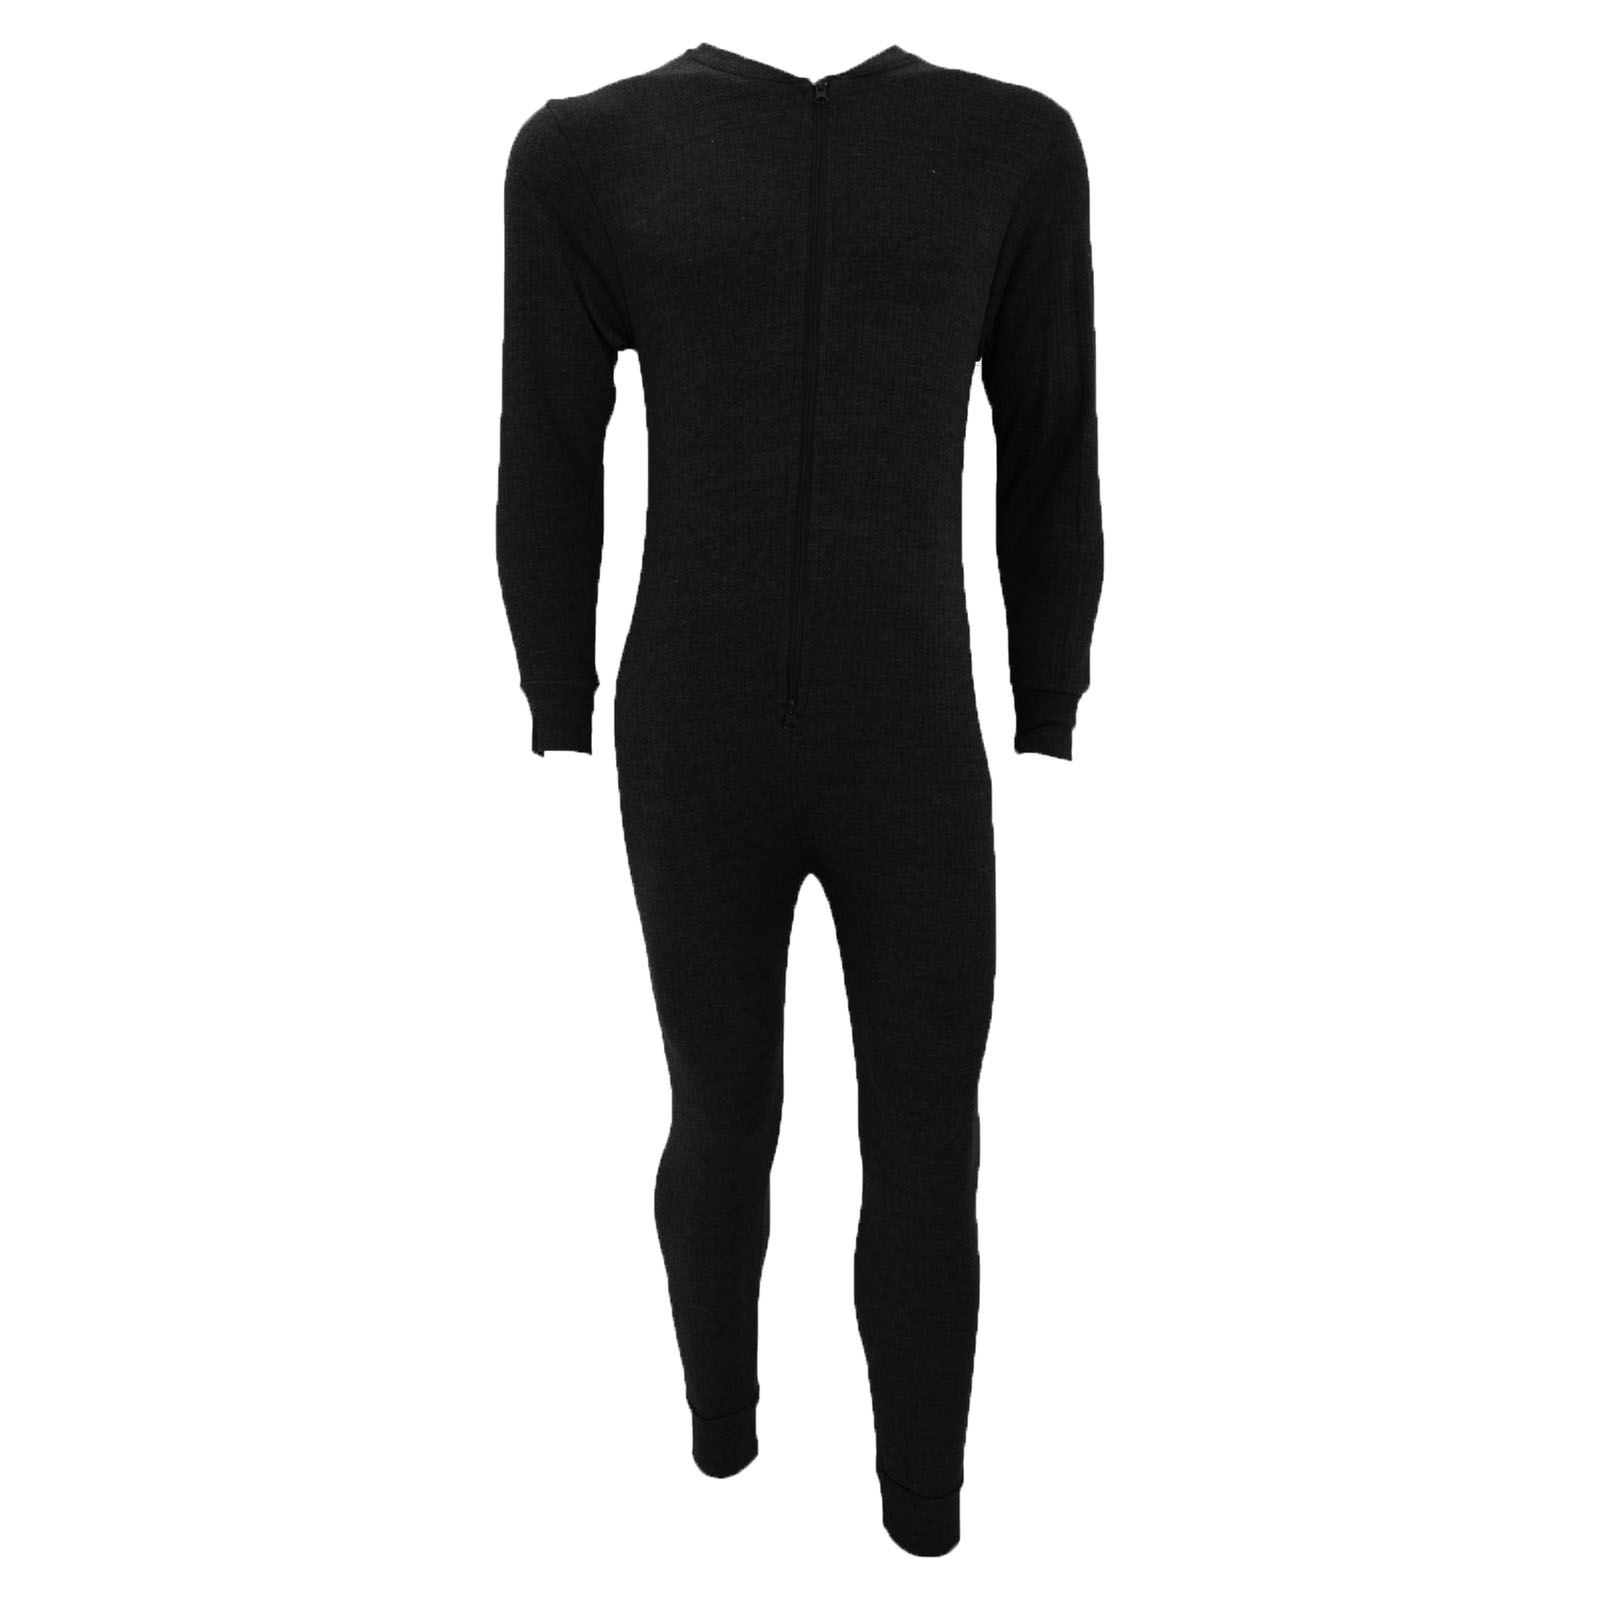 Built for all-round warmth, comfort and performance, SKINS DNAmic Thermal All-in-one Suit is made for on-Piste performance. With Dynamic Gradient Compression providing more oxygen and support to your muscles, that pesky leg